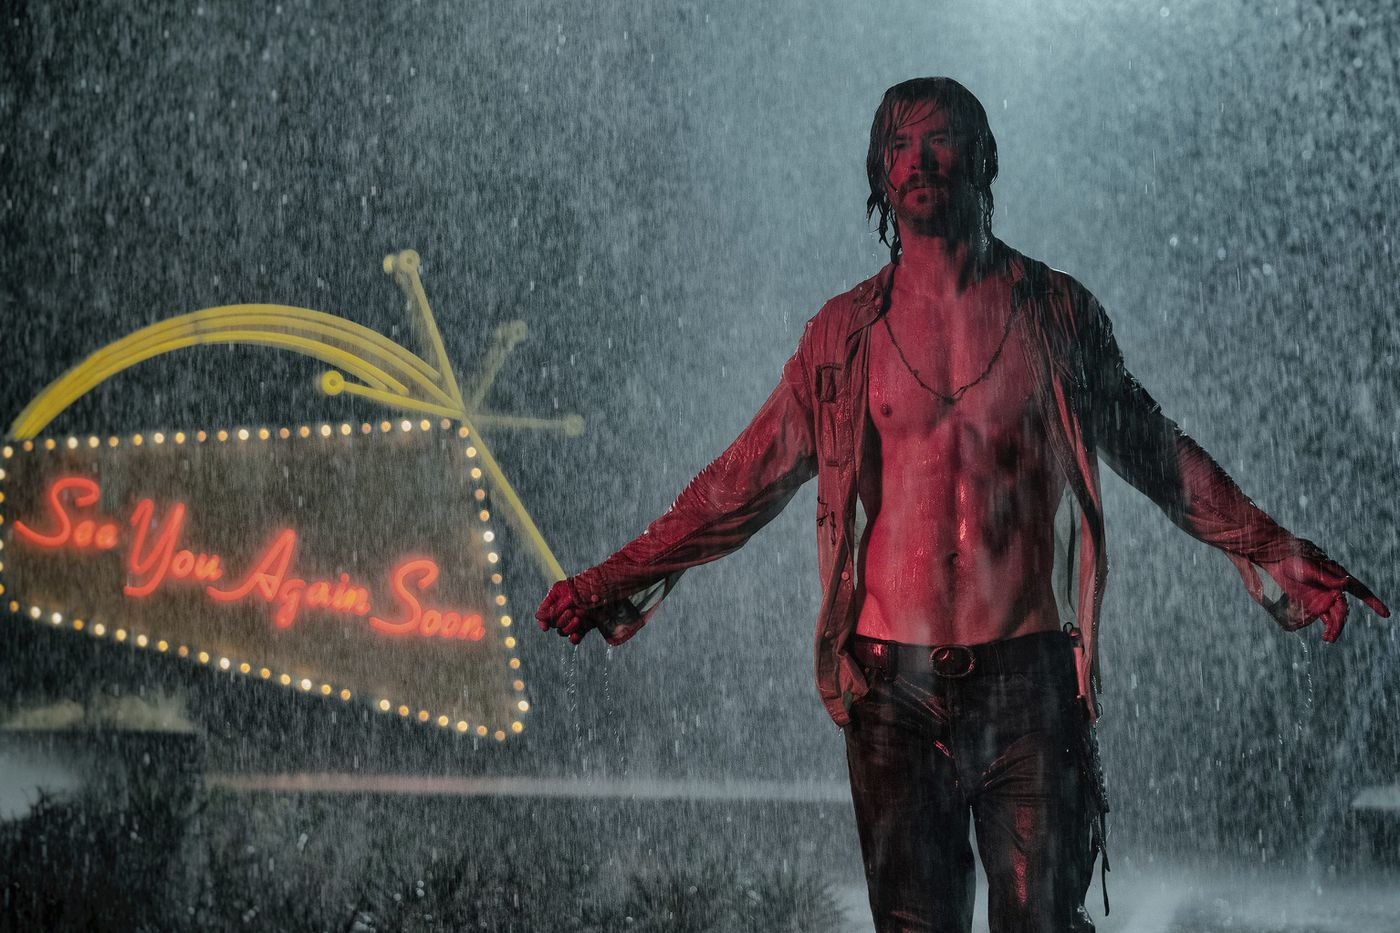 'Bad Times at the El Royale': Chris Hemsworth's abs (and many more) star in this B-movie homage